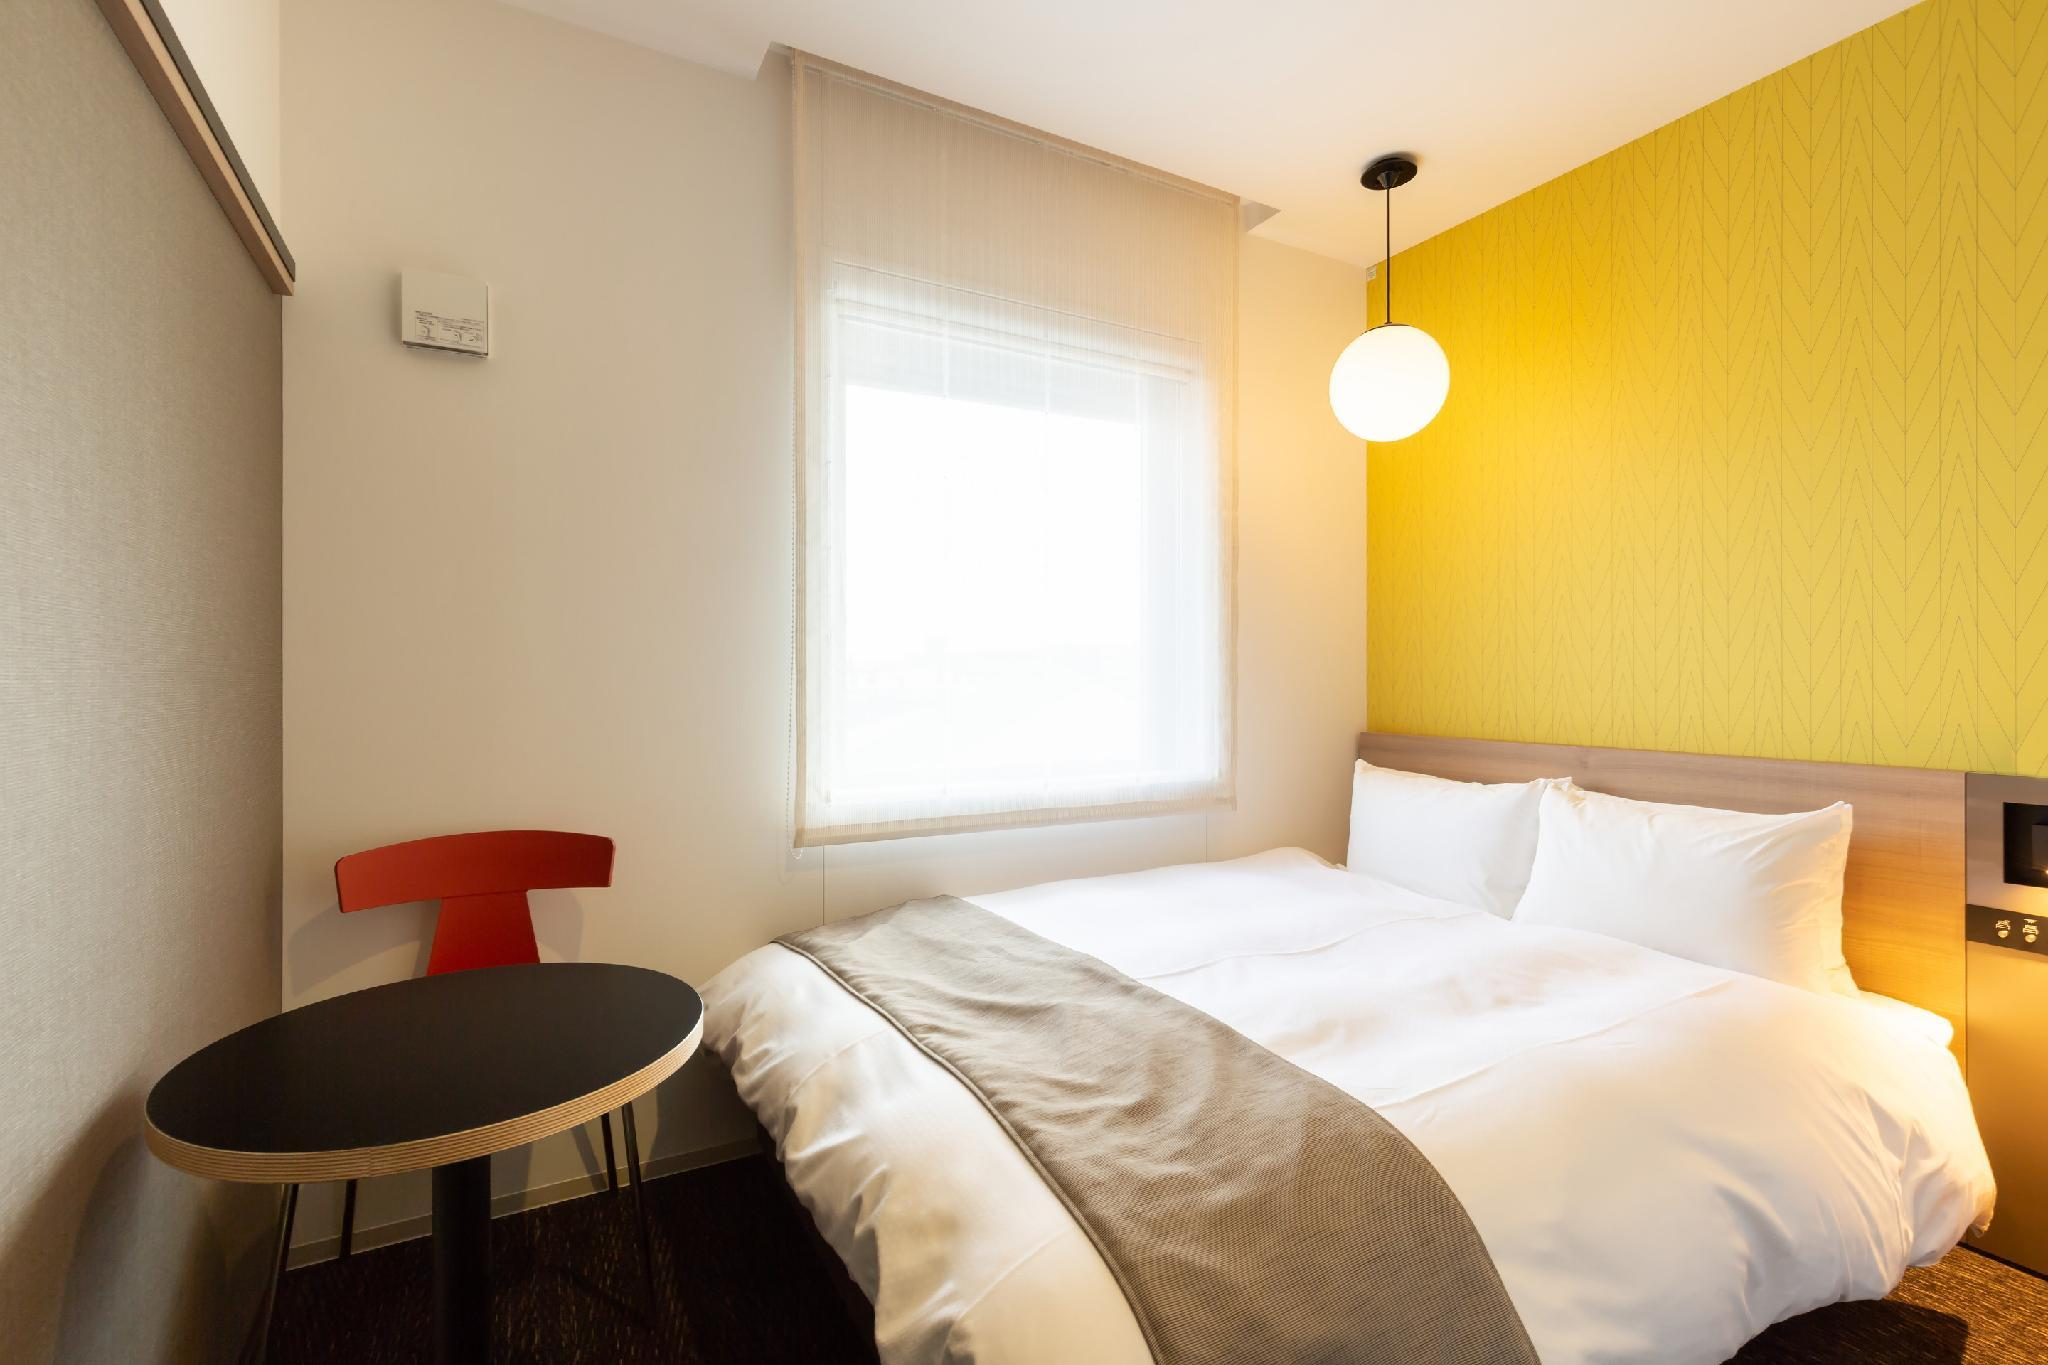 Hotel M S Est Kyoto Station South In Japan Room Deals